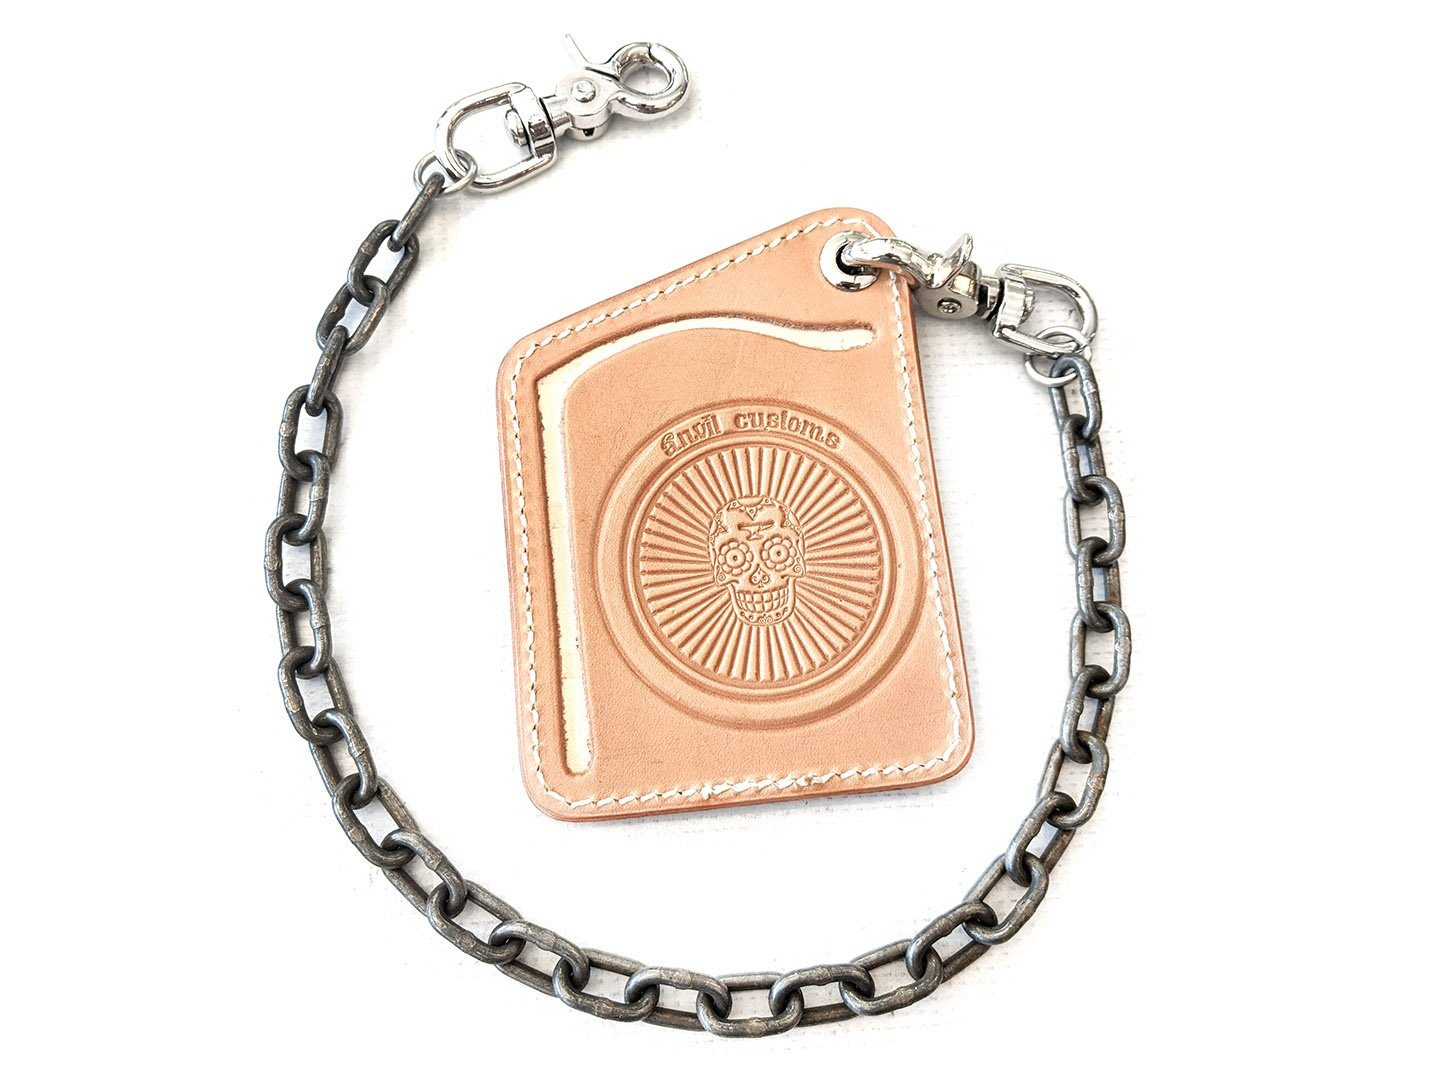 Puritan Chain Wallet - Natural Cowhide with Standard Steel Chain - Anvil Customs